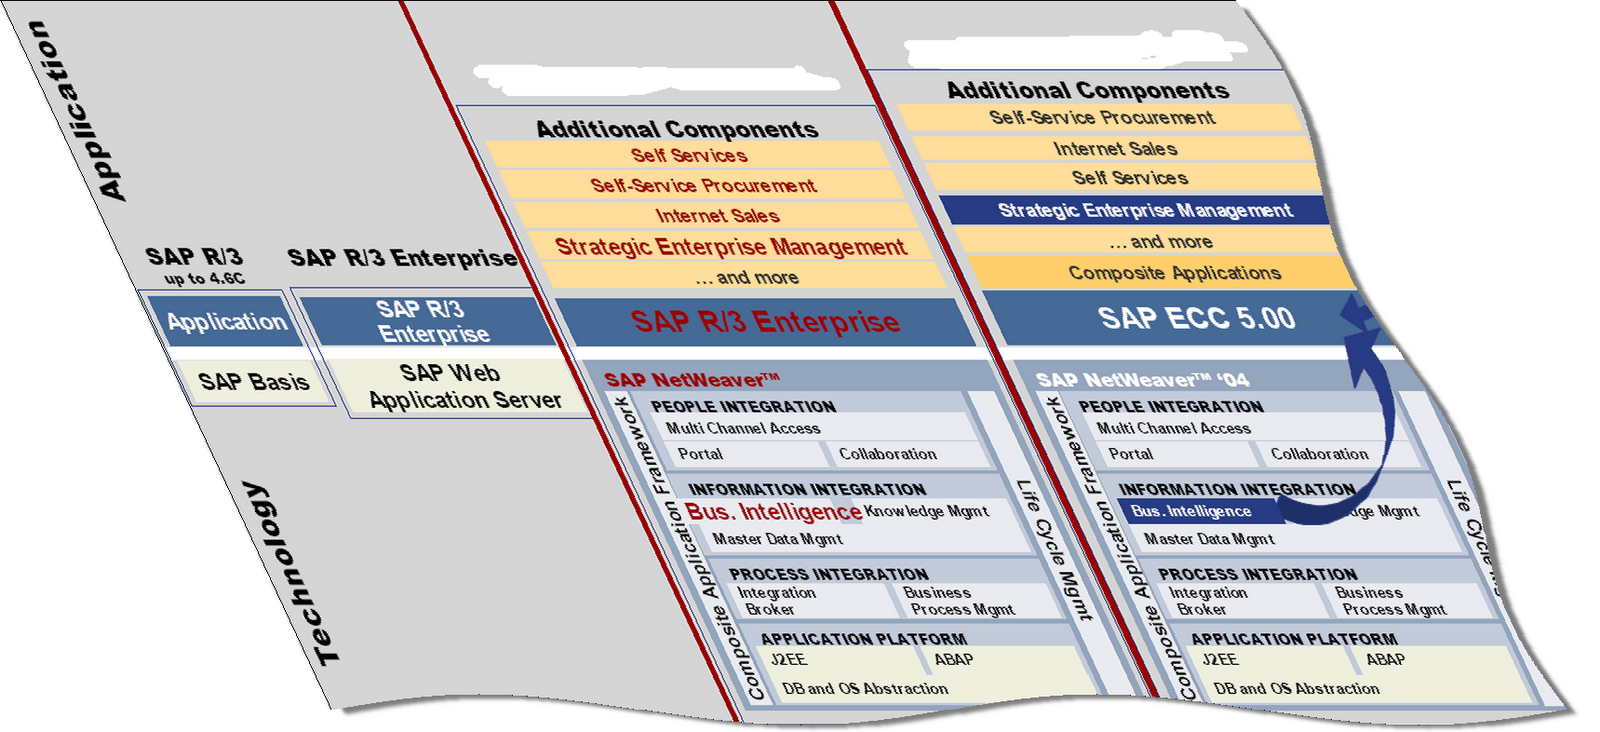 ERP Basis and SAP NetWeaver Overview - SAP ABAP